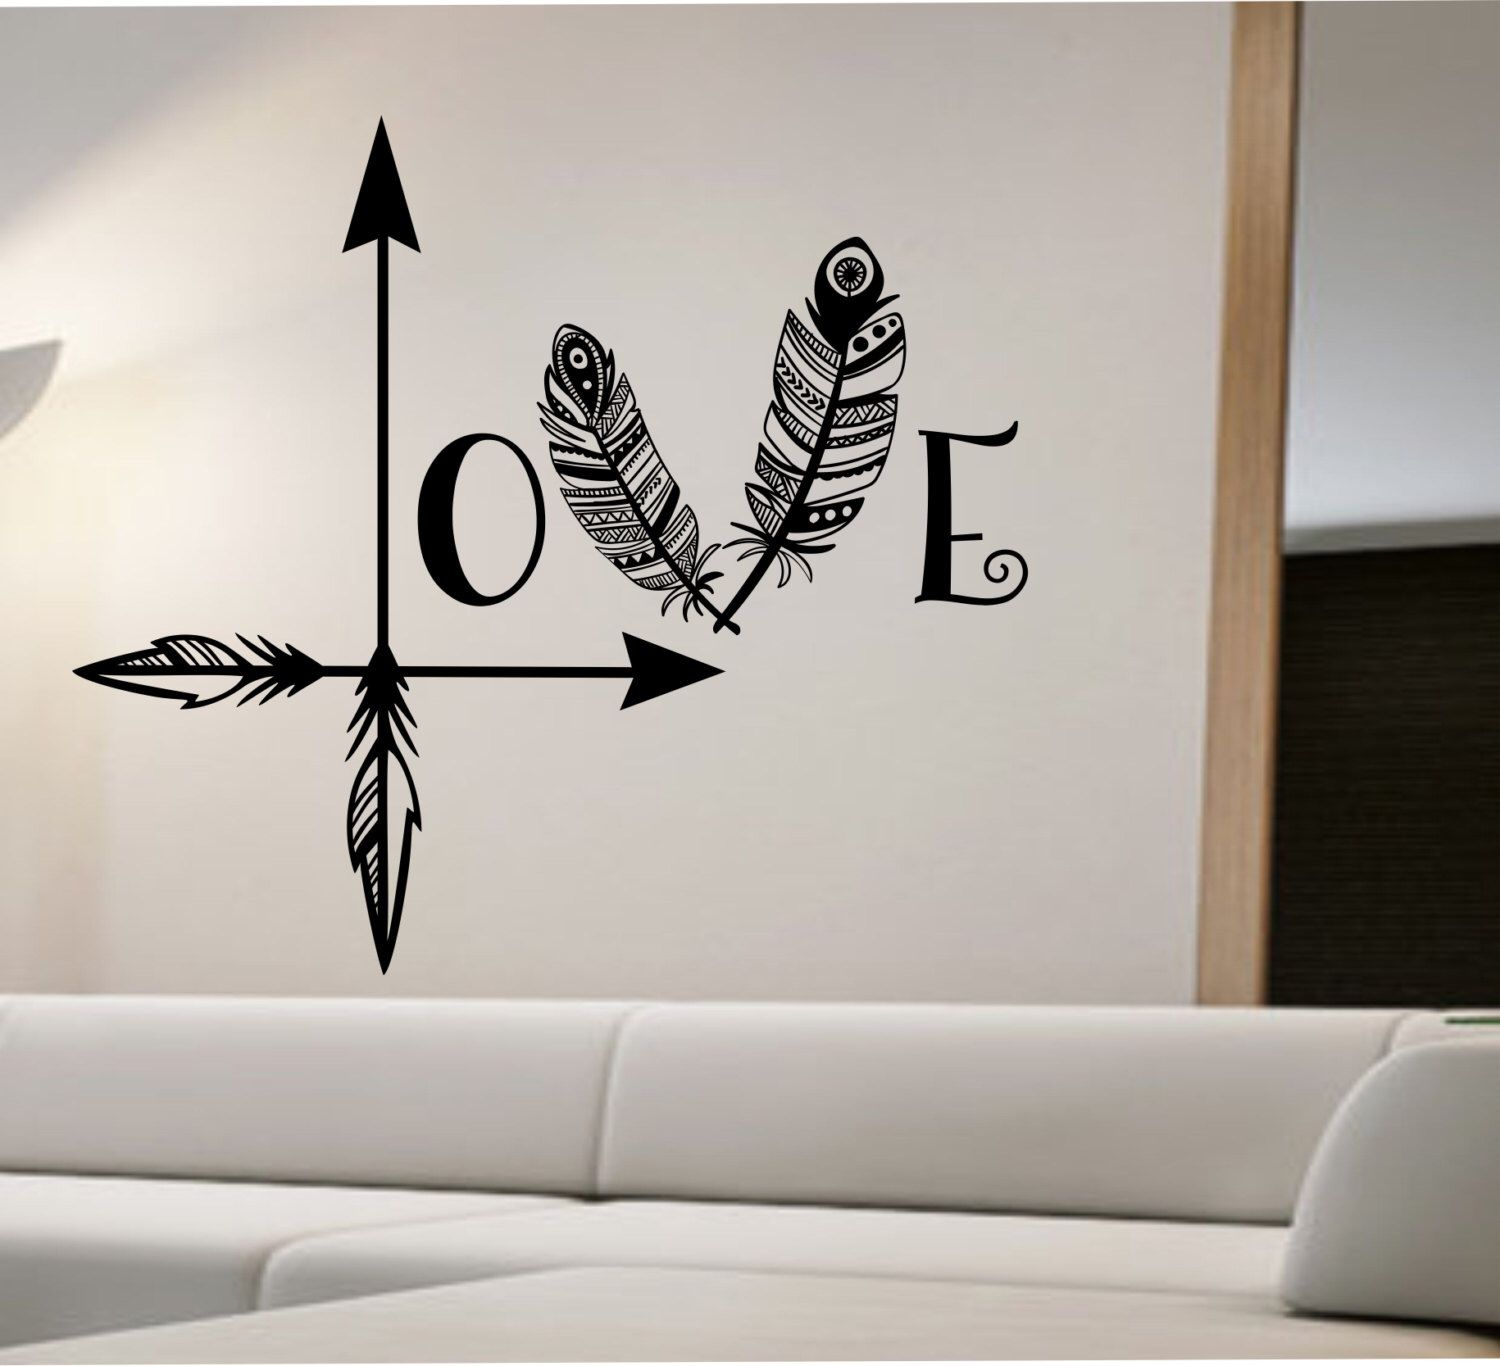 Wall Design Decals koi fish wall decals Arrow Feather Love Wall Decal Namaste Vinyl Sticker Art Decor Bedroom Design Mural Home Decor Room